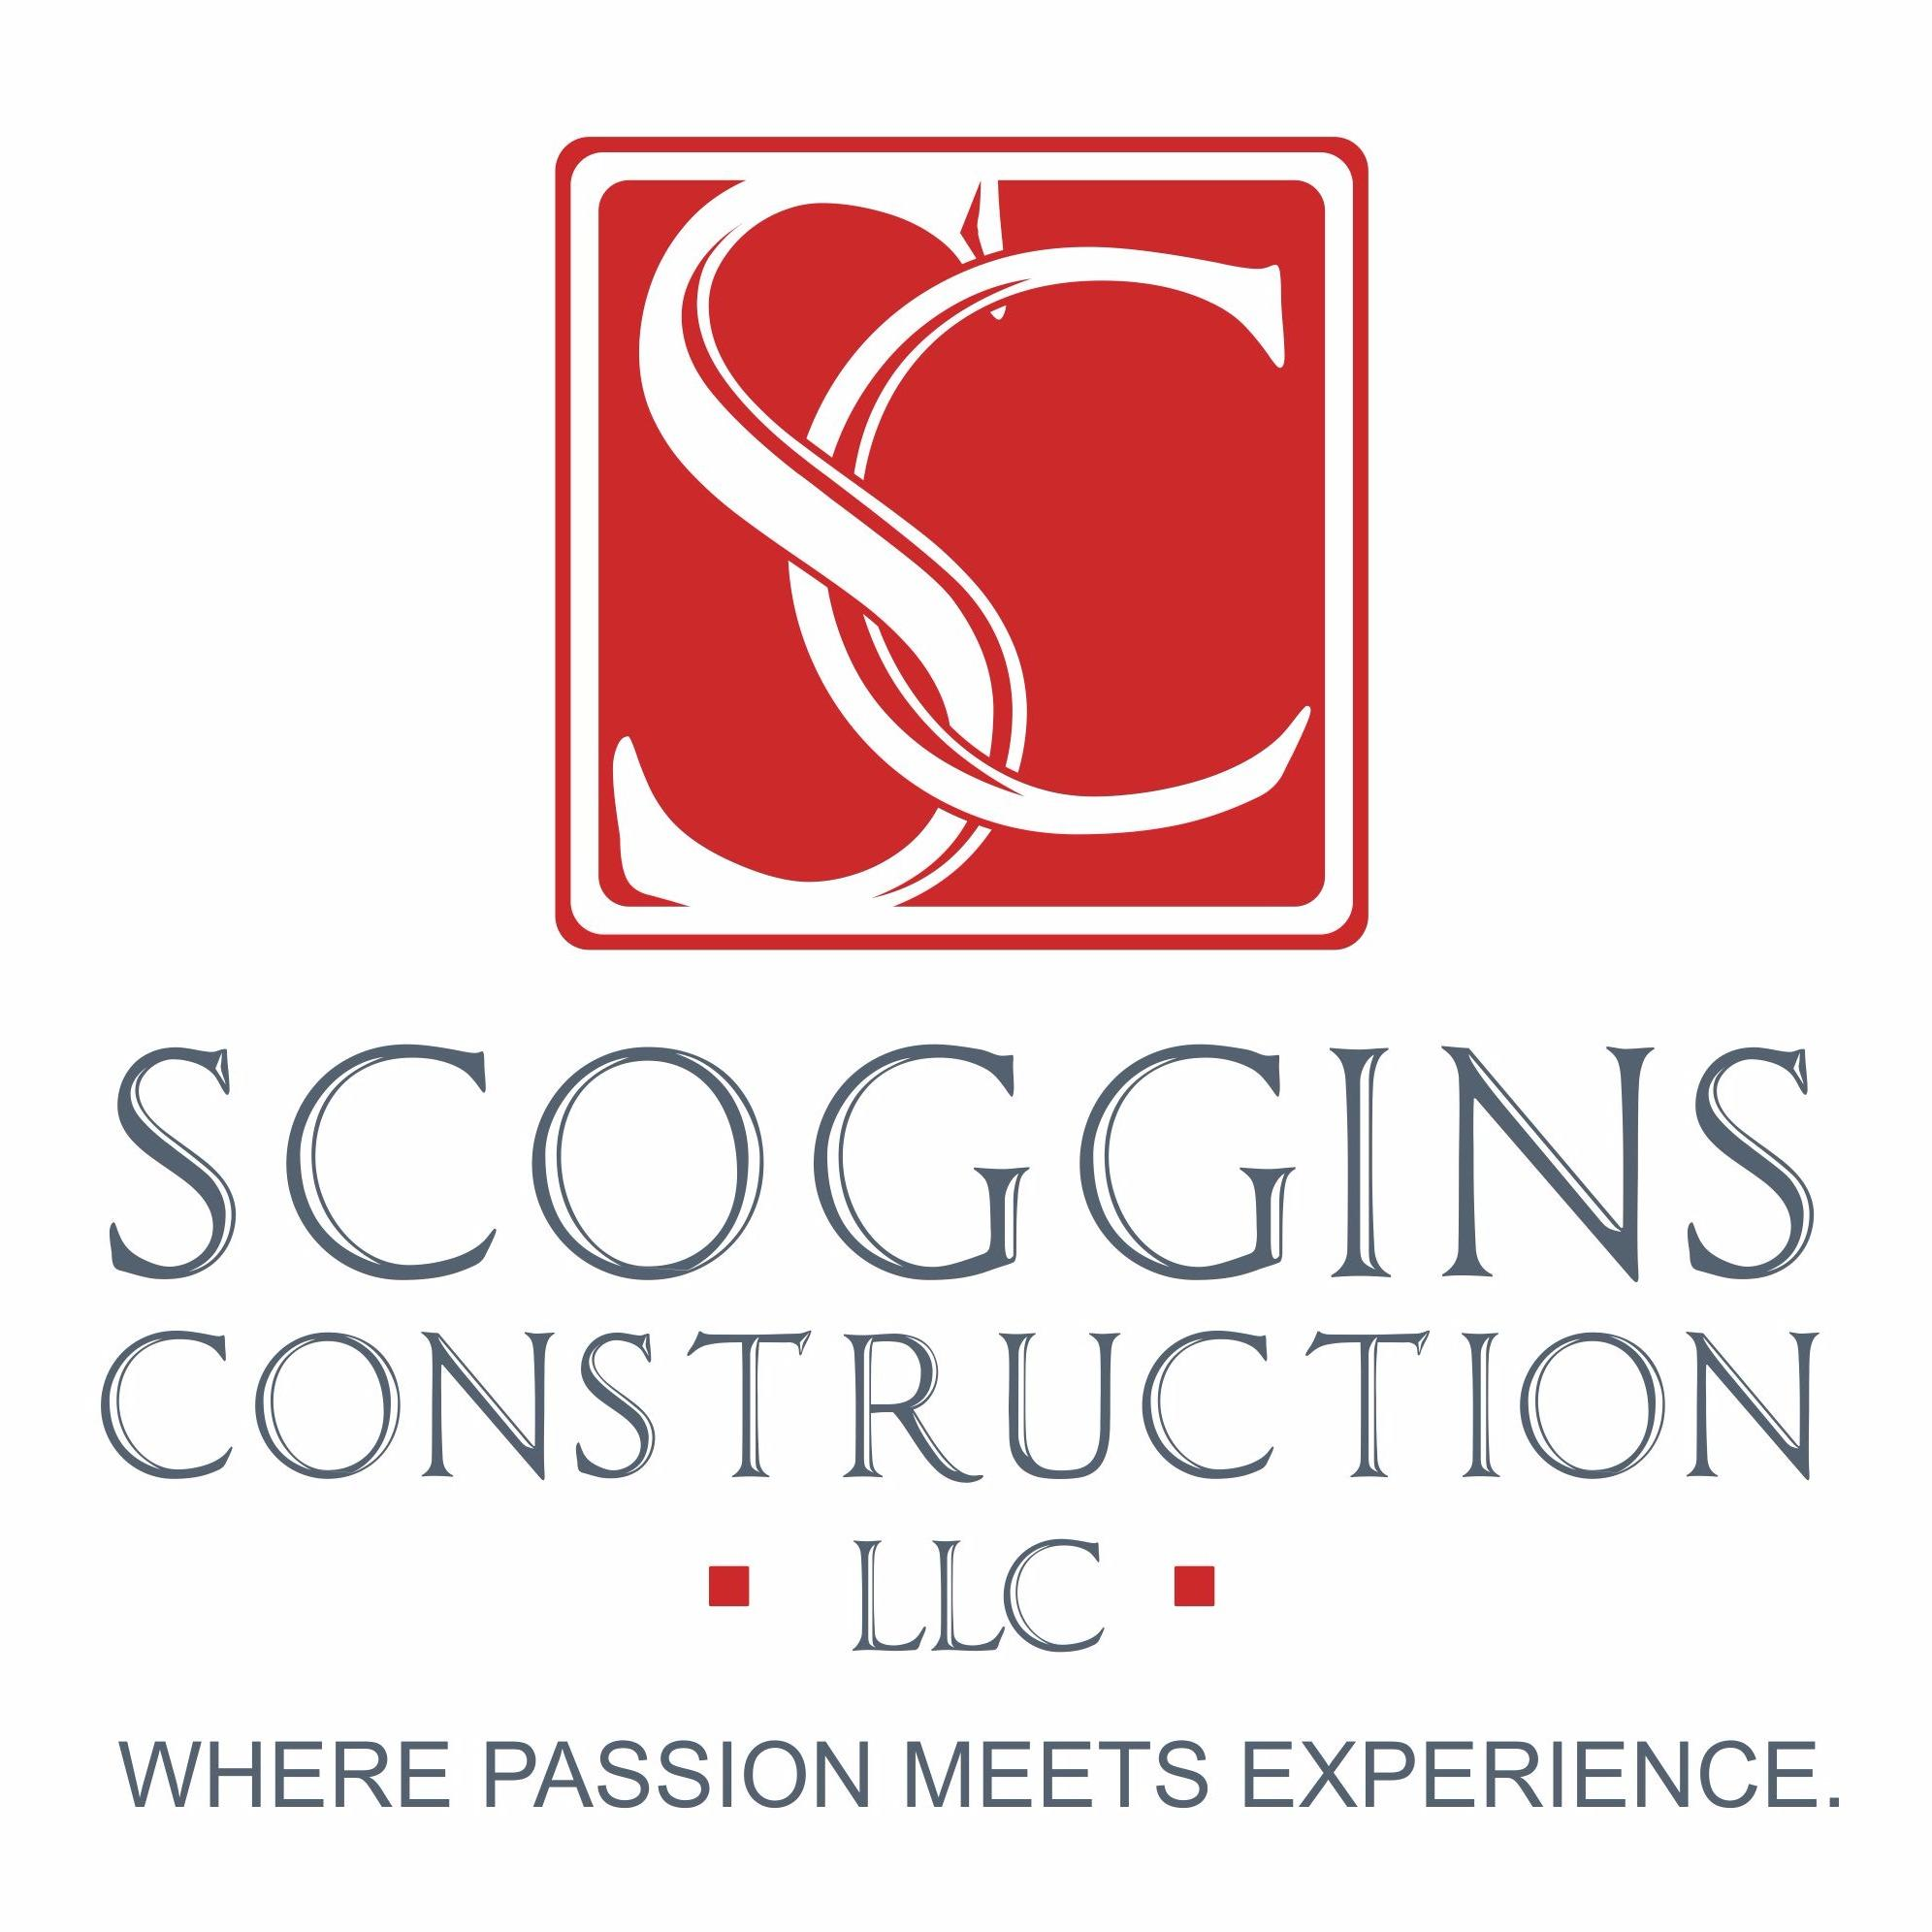 Scoggins Construction I Llc